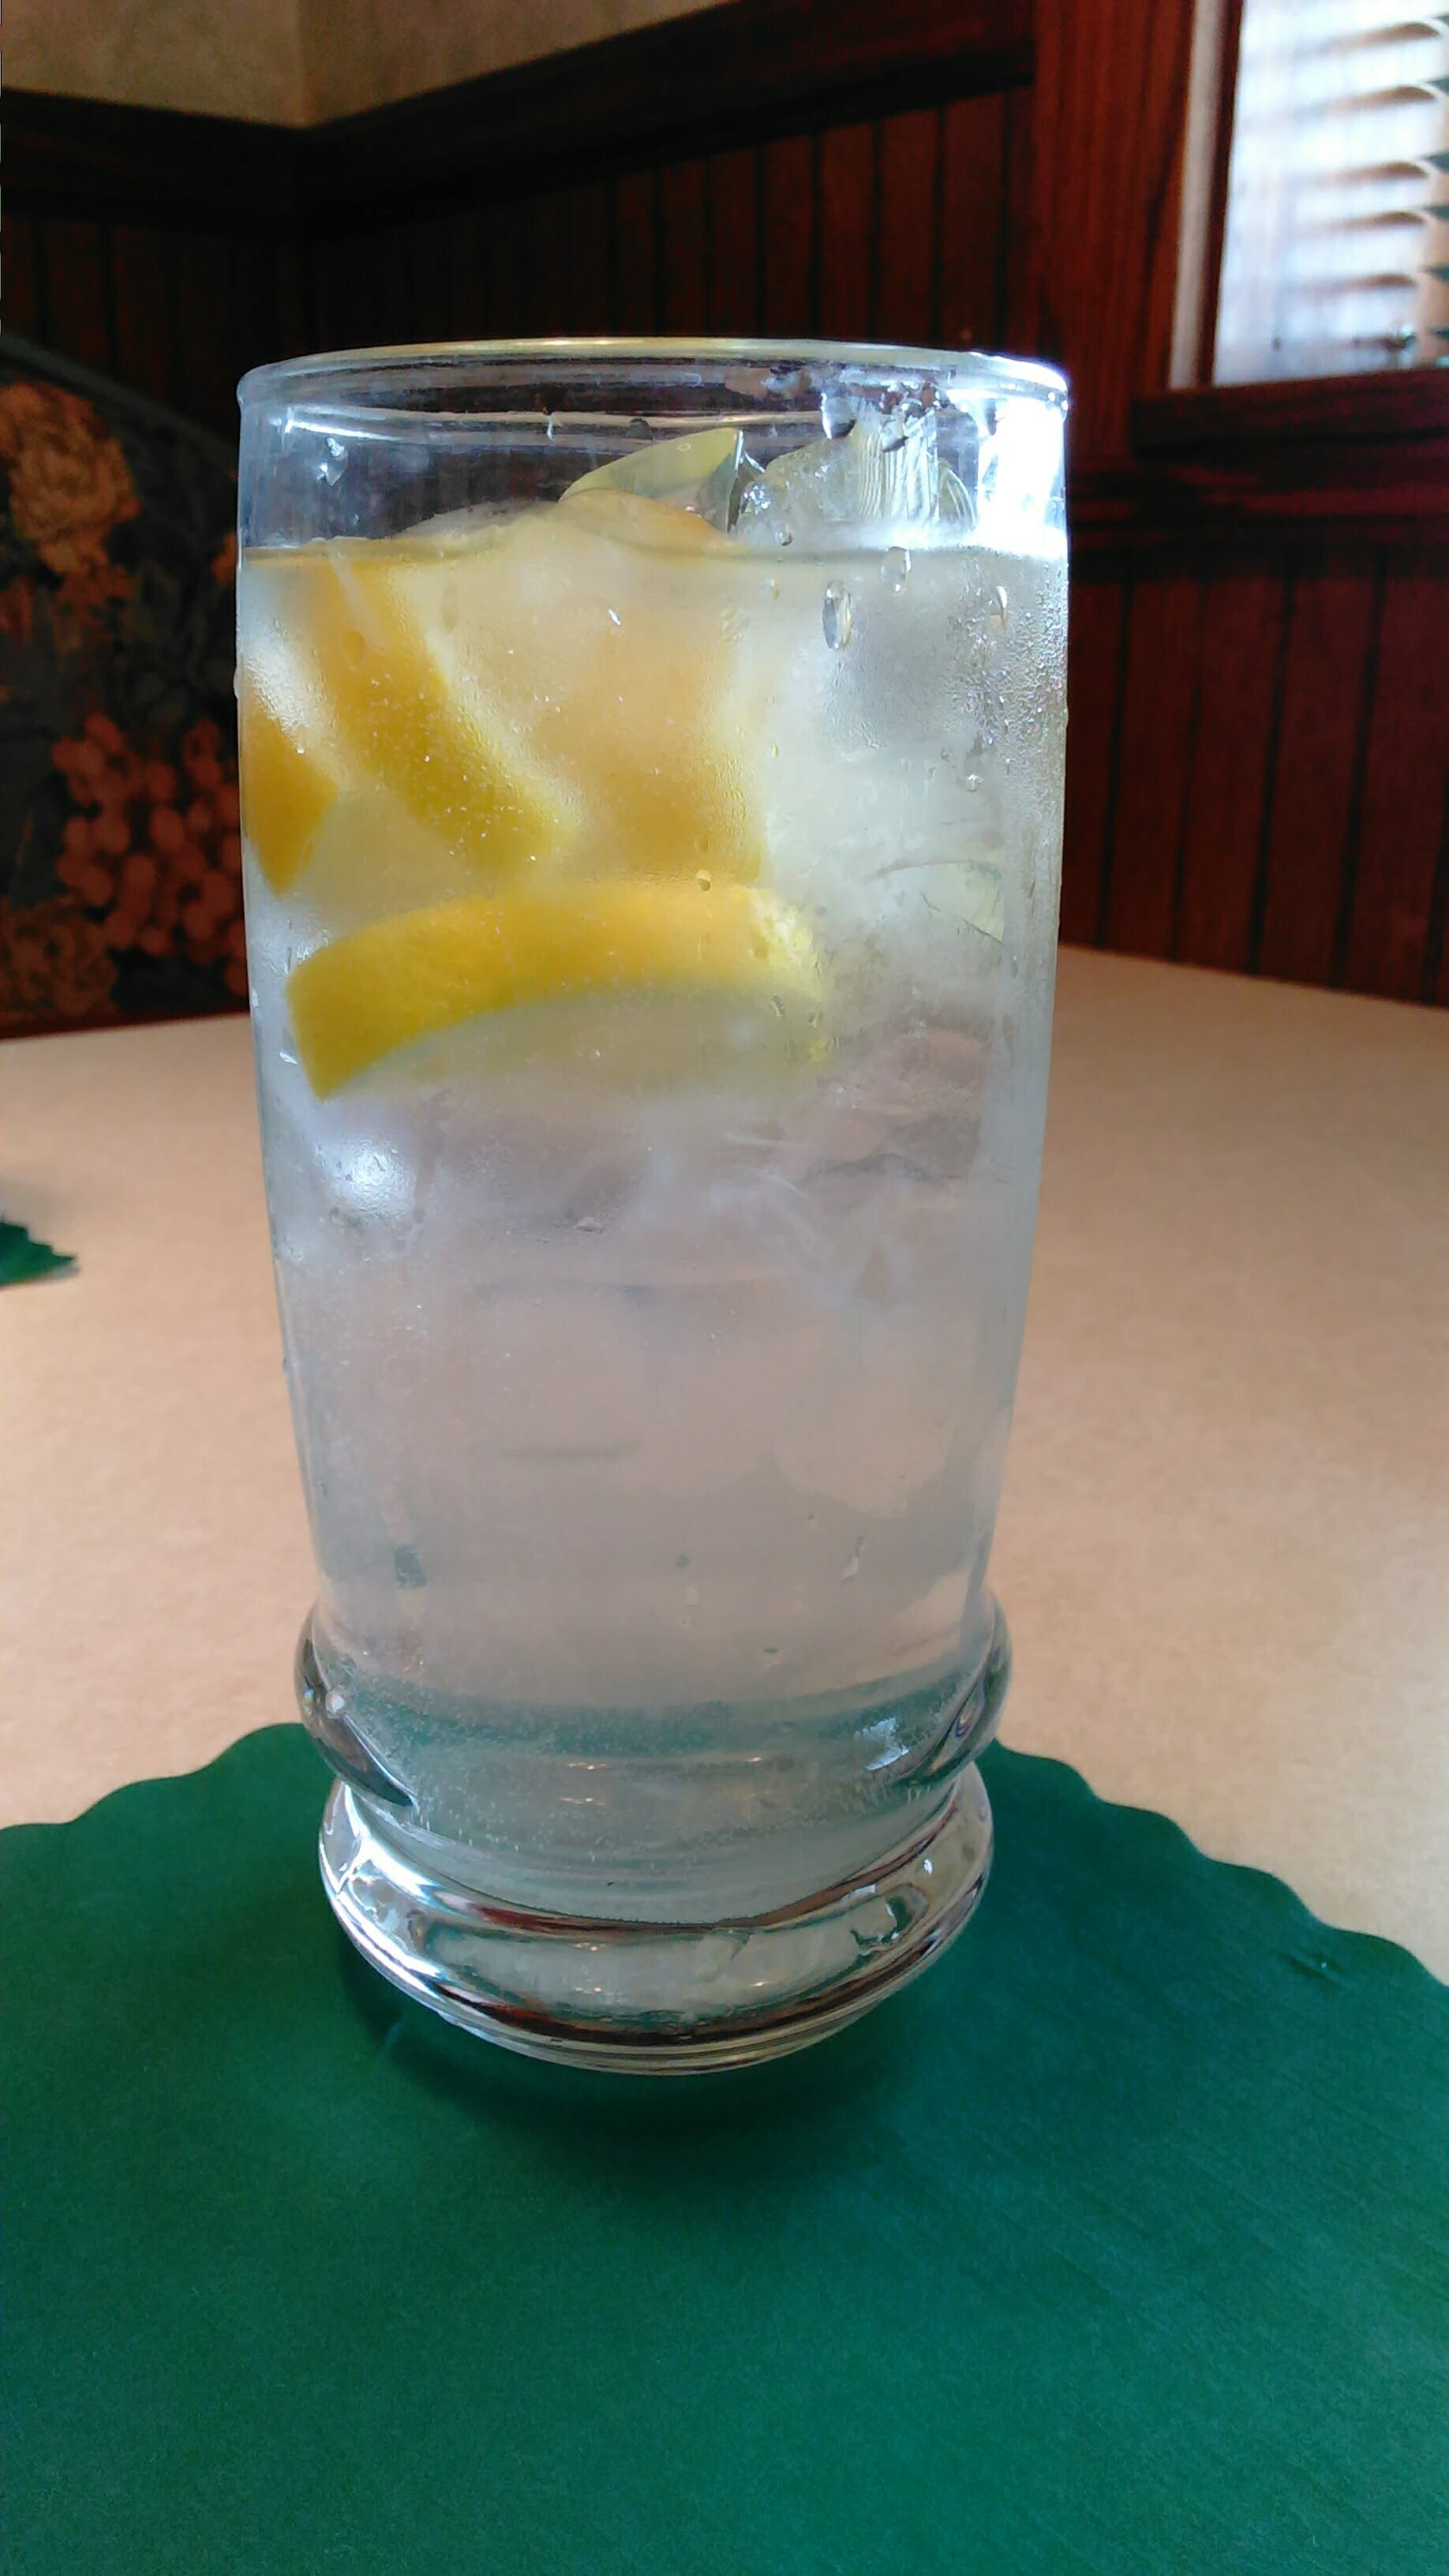 Ice water with lemon in